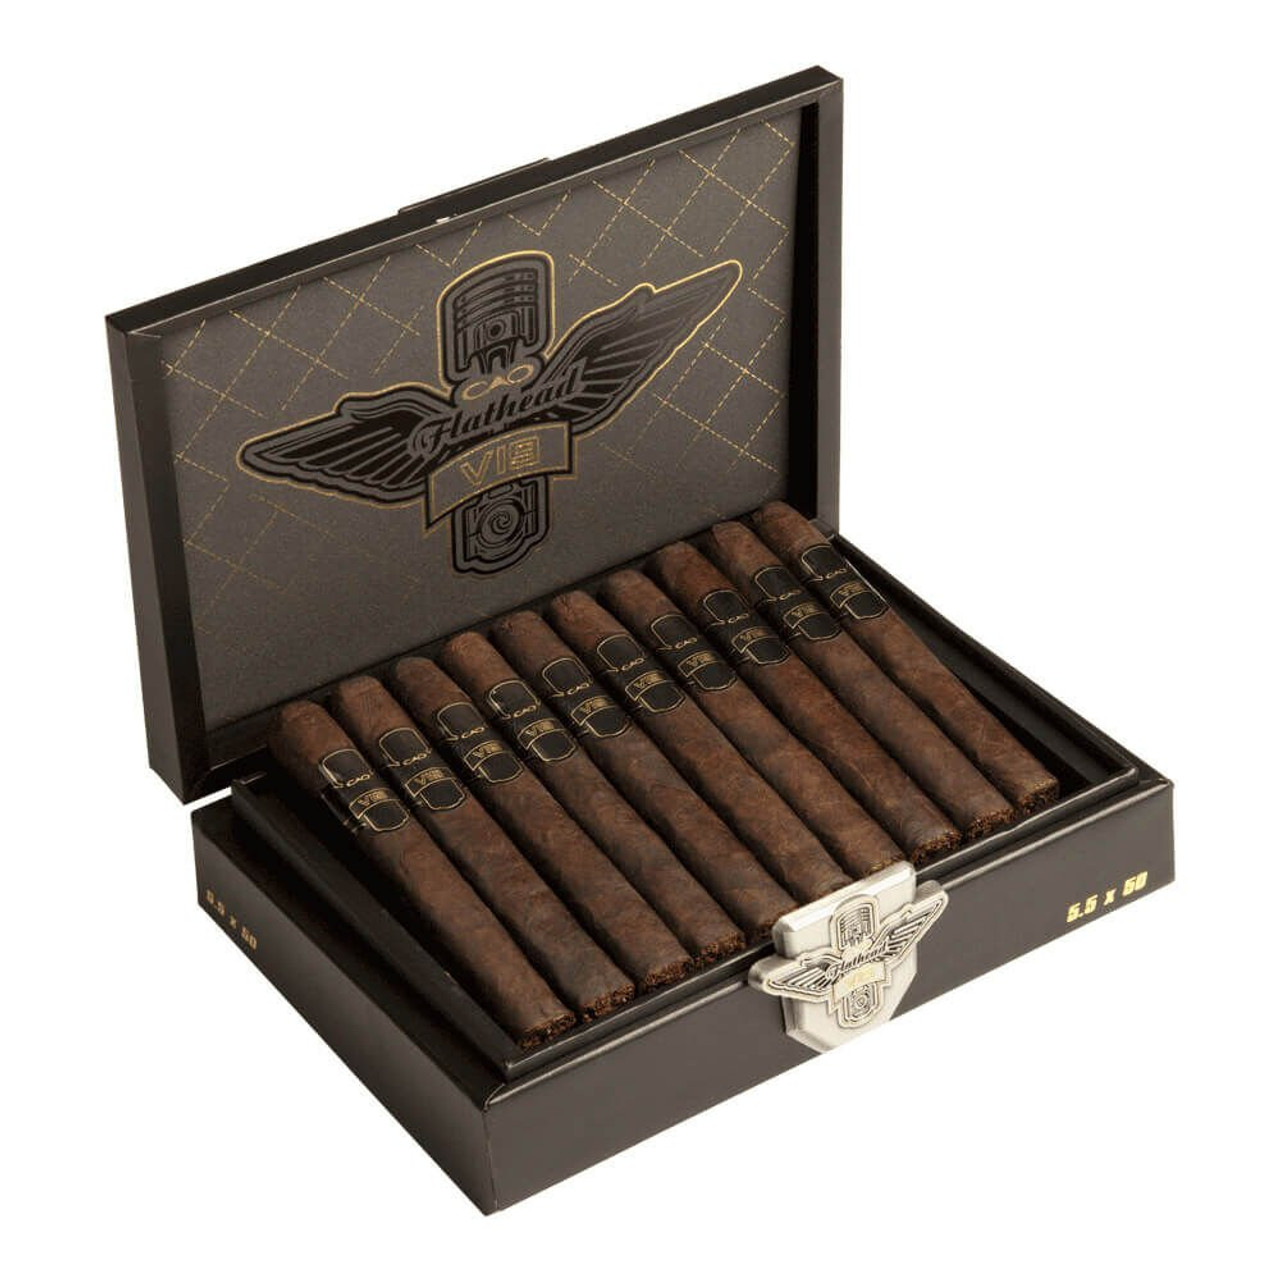 CAO Flathead V19 Carb Cigars - 6 x 60 (Box of 20)